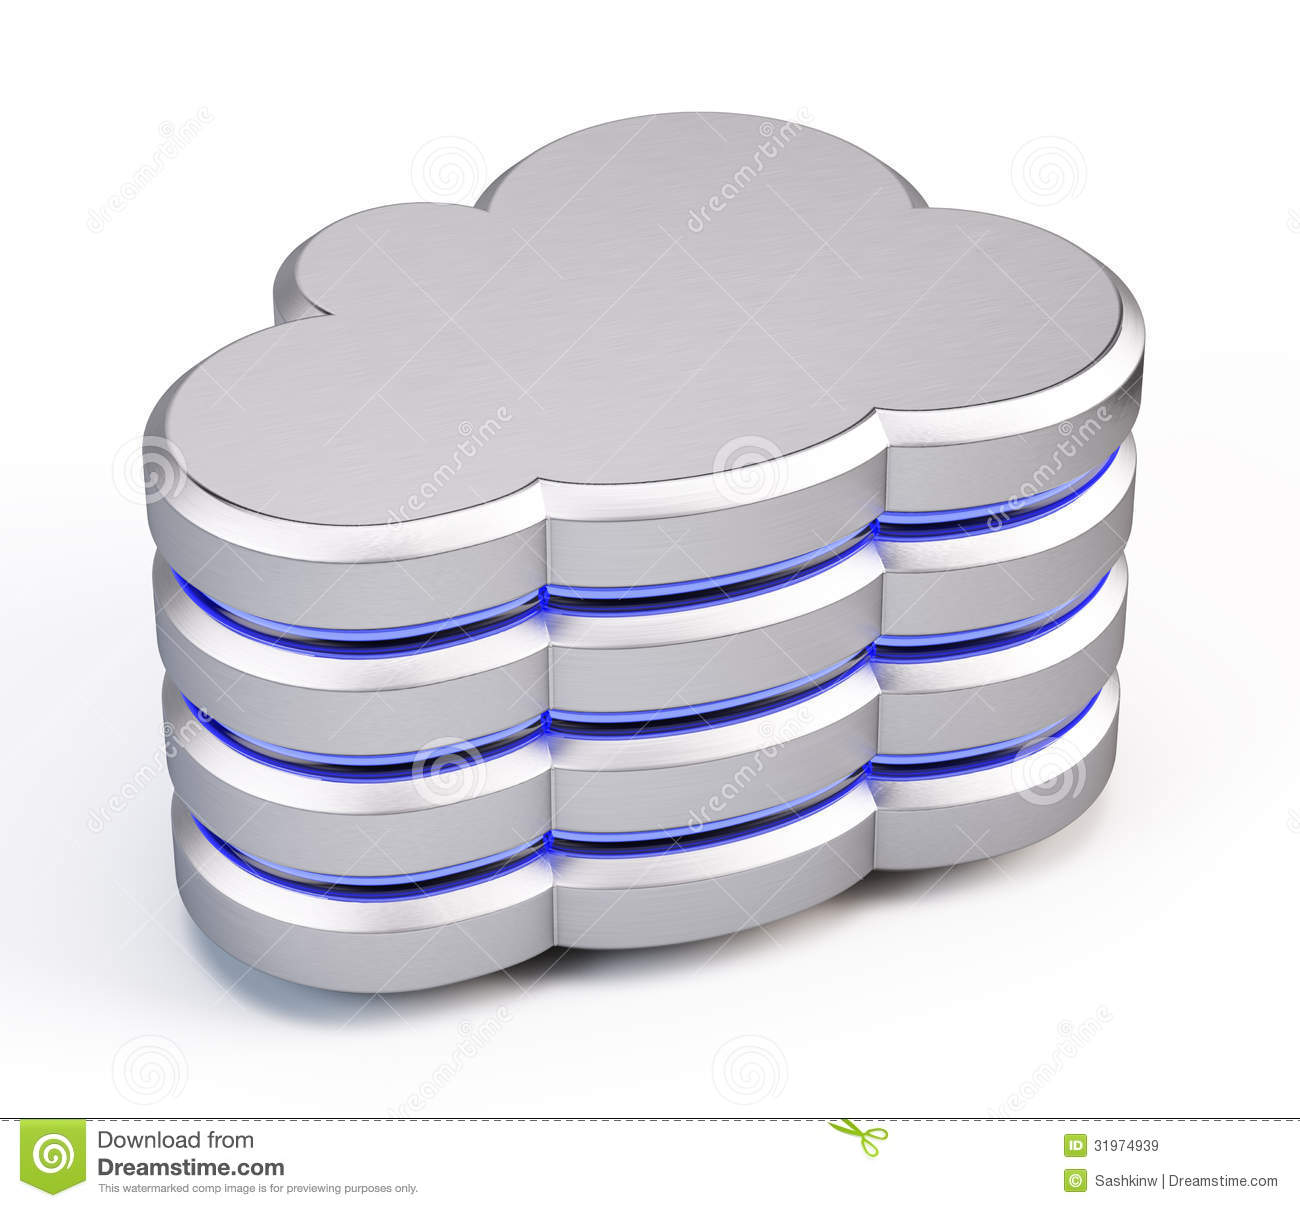 Cloud Database Icon Royalty Free Stock Images - Image: 31974939: www.dreamstime.com/royalty-free-stock-images-cloud-database-icon-d...